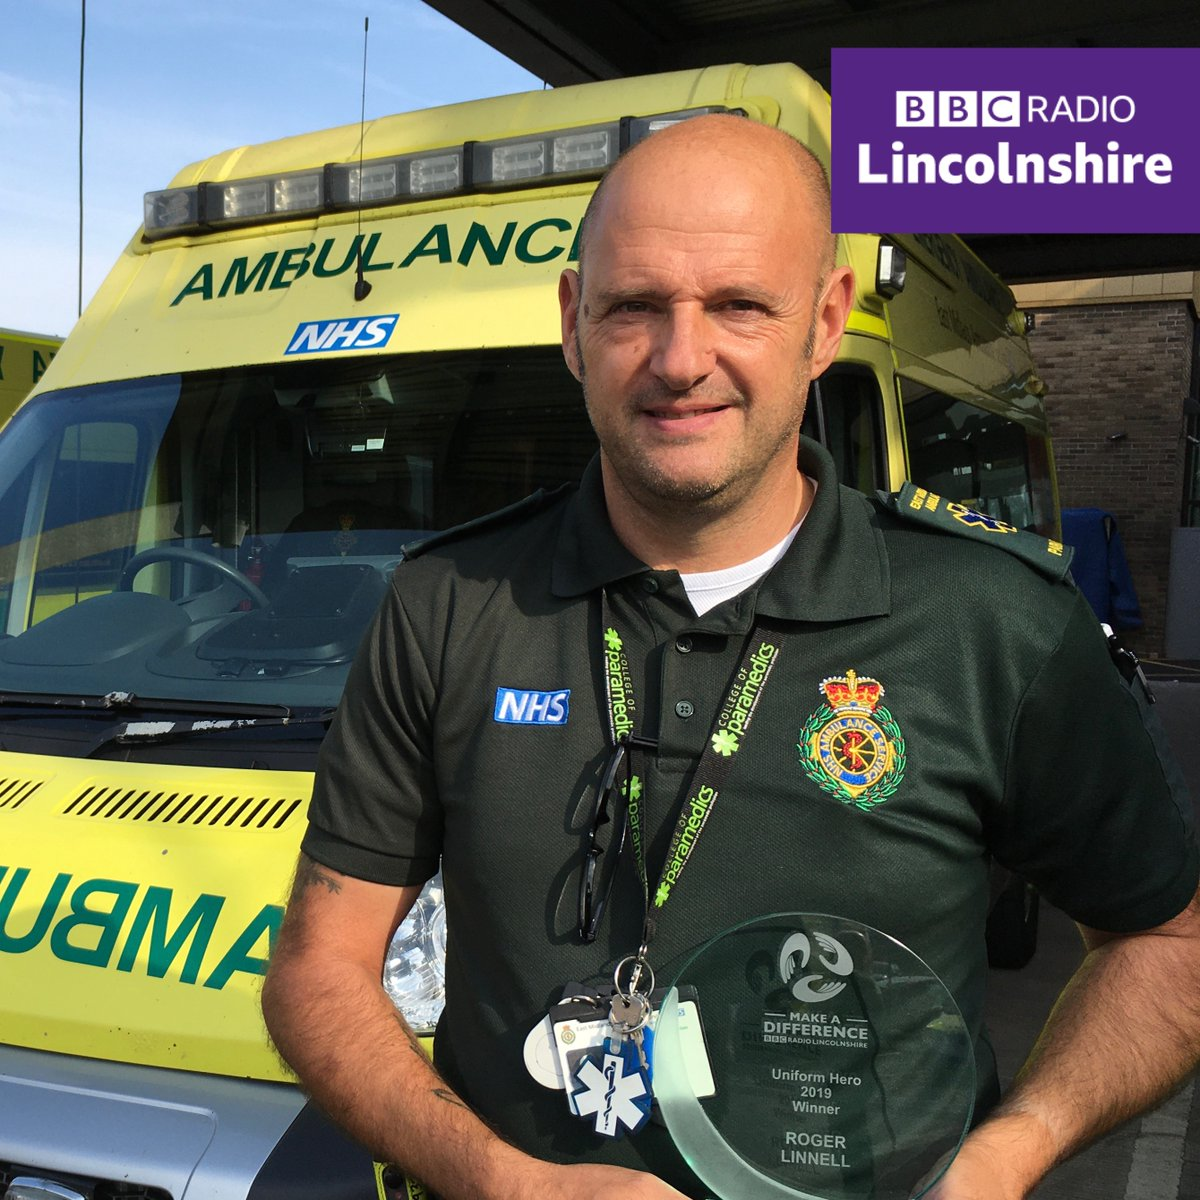 Any excuse to get out the black tie eh @melvynprior! 🕺  We've finally been able to deliver Roger Linnell's (@LinnellRoger) #BBCMakeADifference #UniformHero award!  The @EMASNHSTrust & former @LNAACT paramedic was a little surprised! 👂 to his reaction: https://t.co/9D35cbJcPx https://t.co/cB52Kb8w94